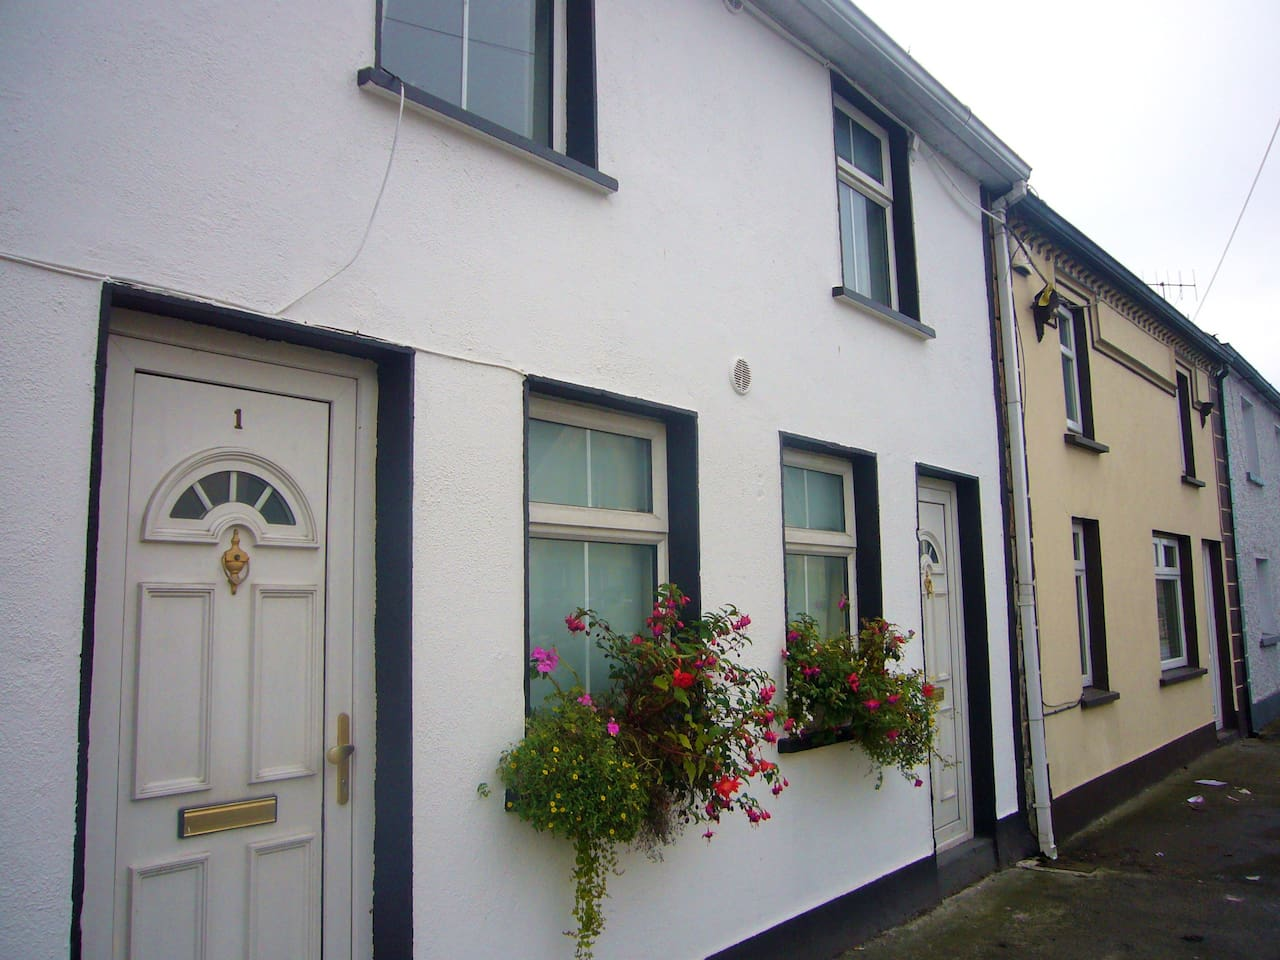 Ground Floor Apartment in the heart of historic Callan Town - just 10 miles from Kilkenny city. A couple of minutes stroll to pubs, grub and shops!